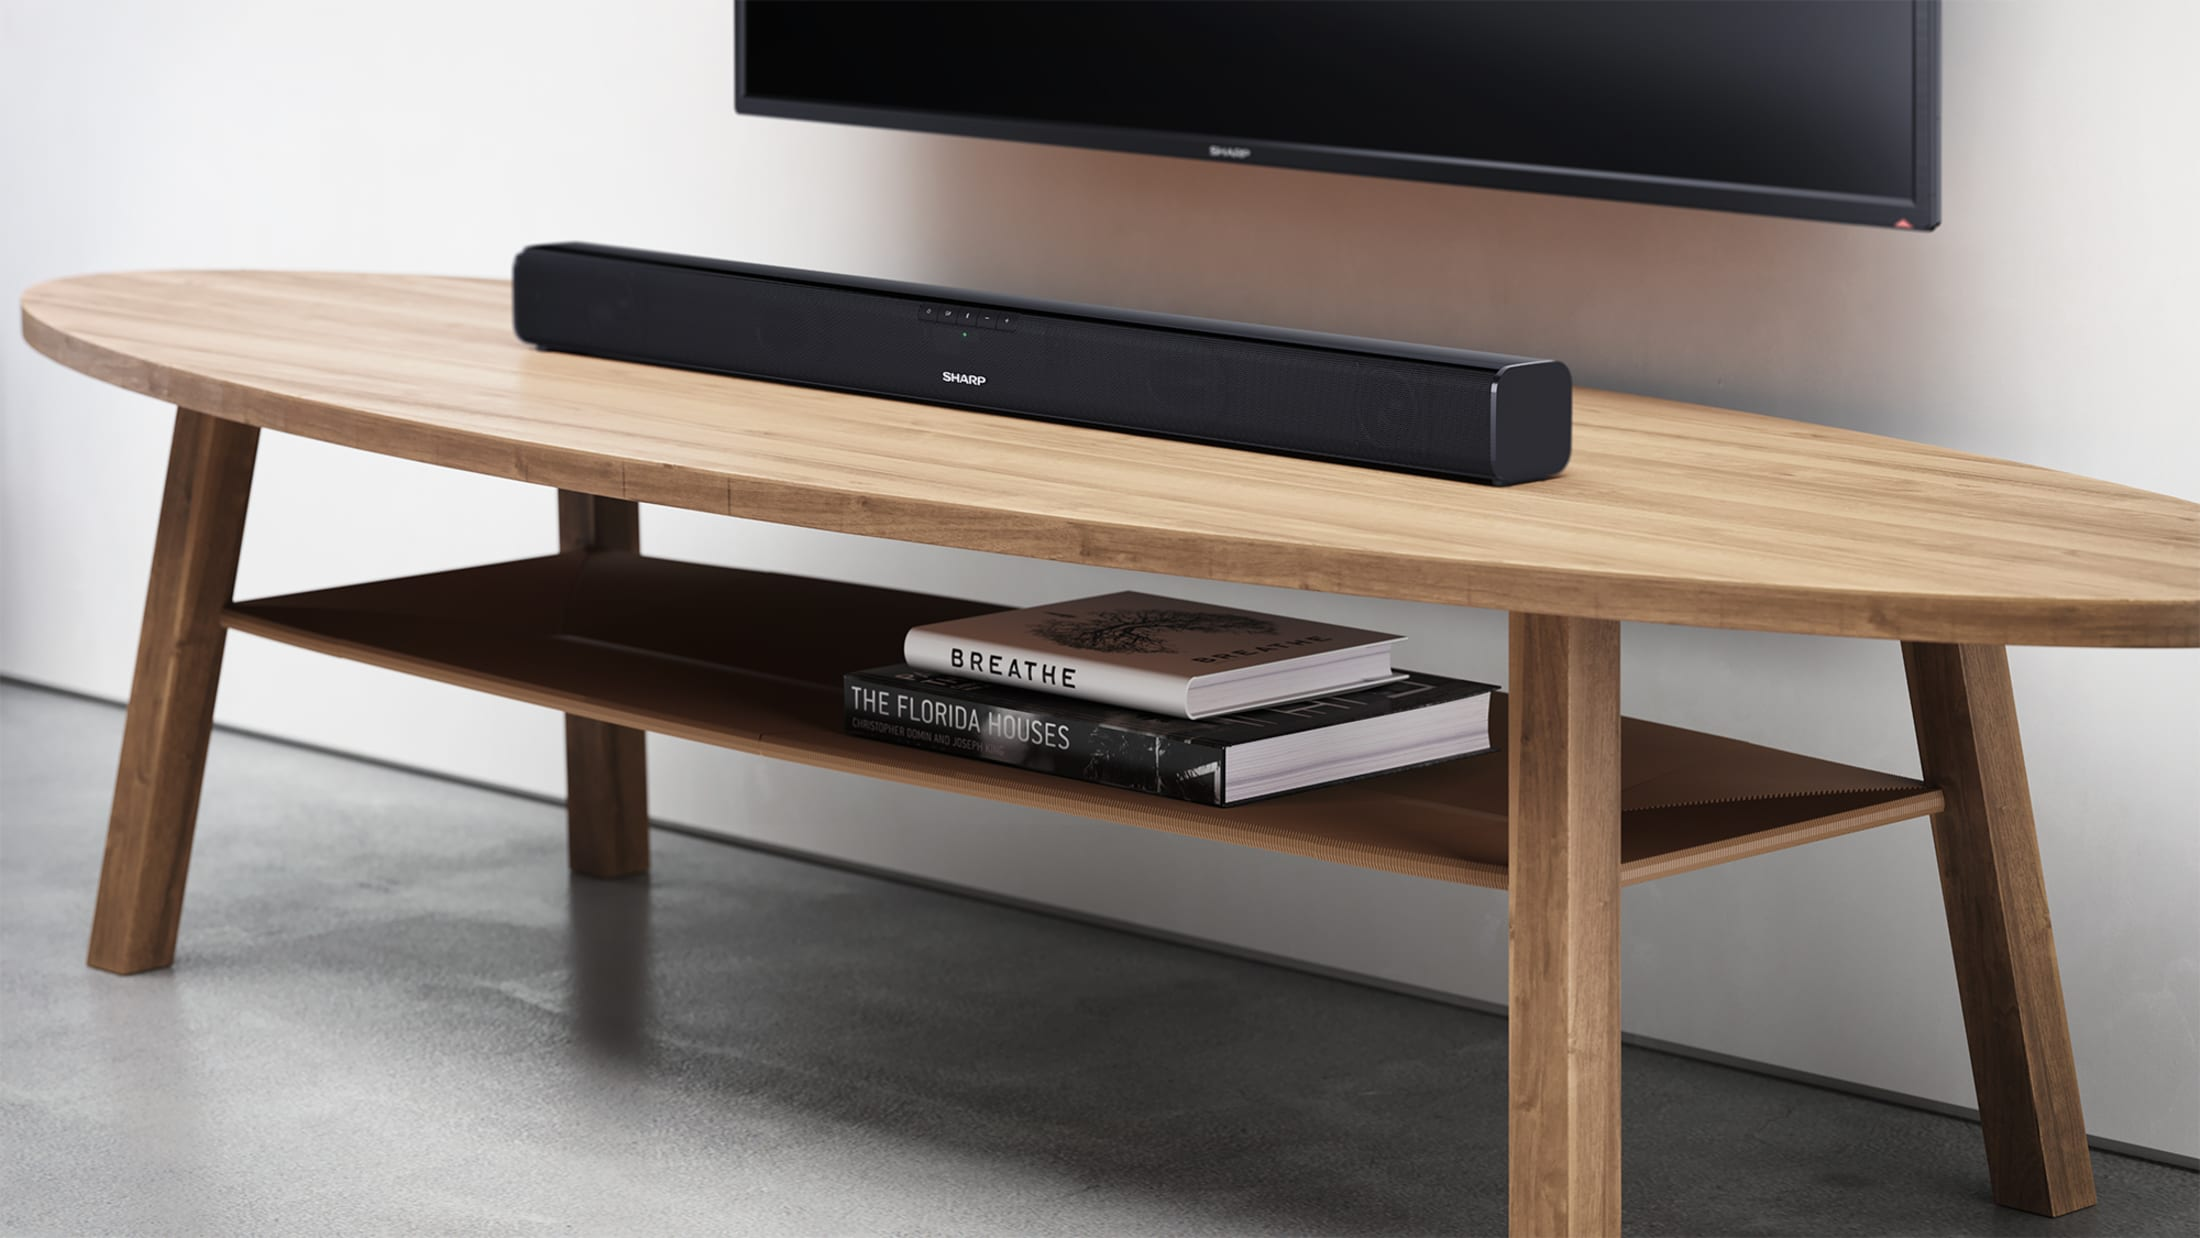 2.0 Slim Soundbar with 90 W and Bluetooth wireless music streaming. Suitable for 37 inch TV and above.